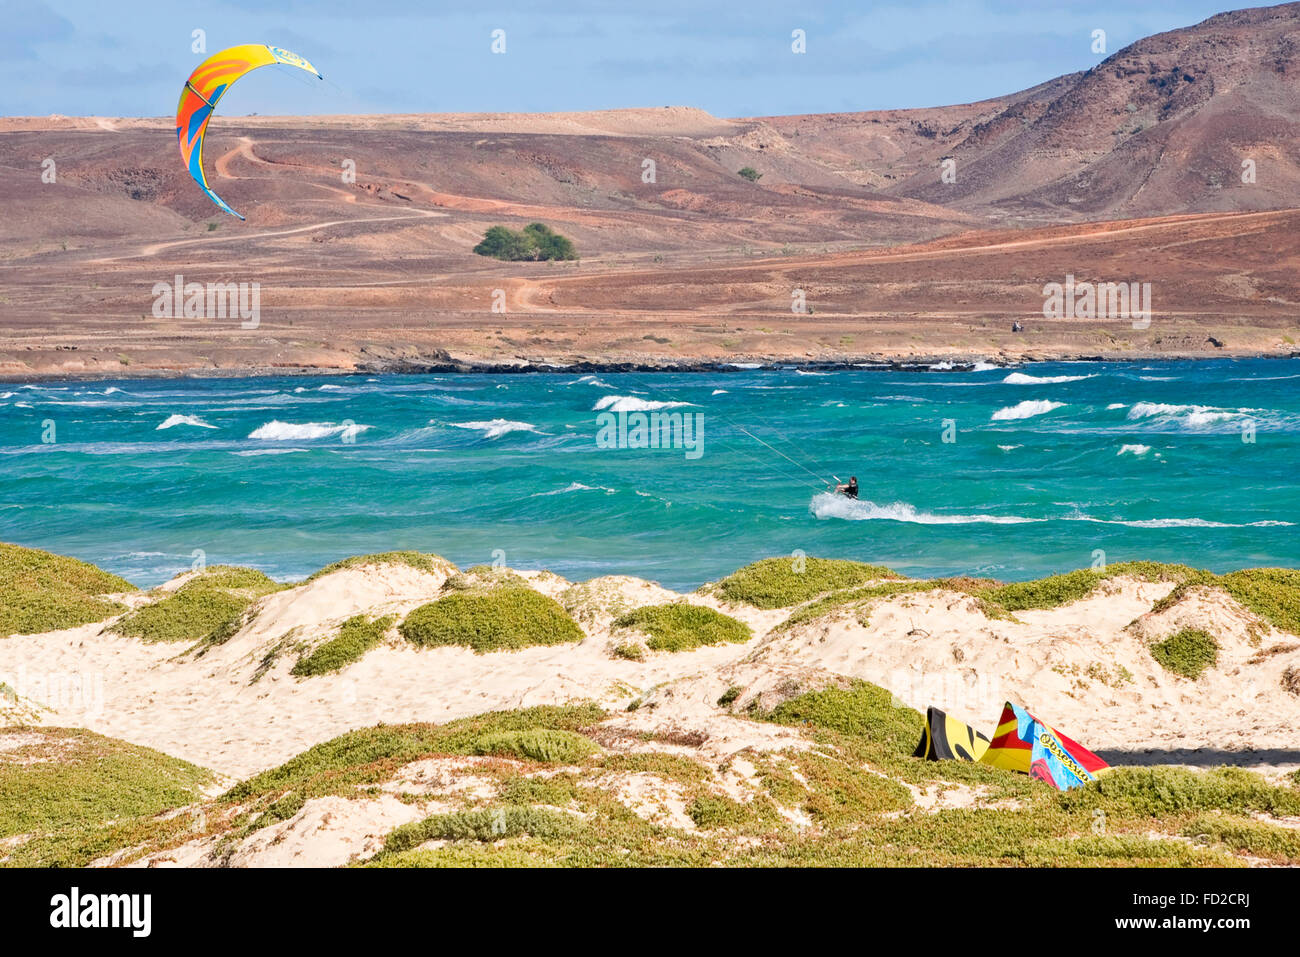 Horizontal view of a kite surfer in Cape Verde. Stock Photo